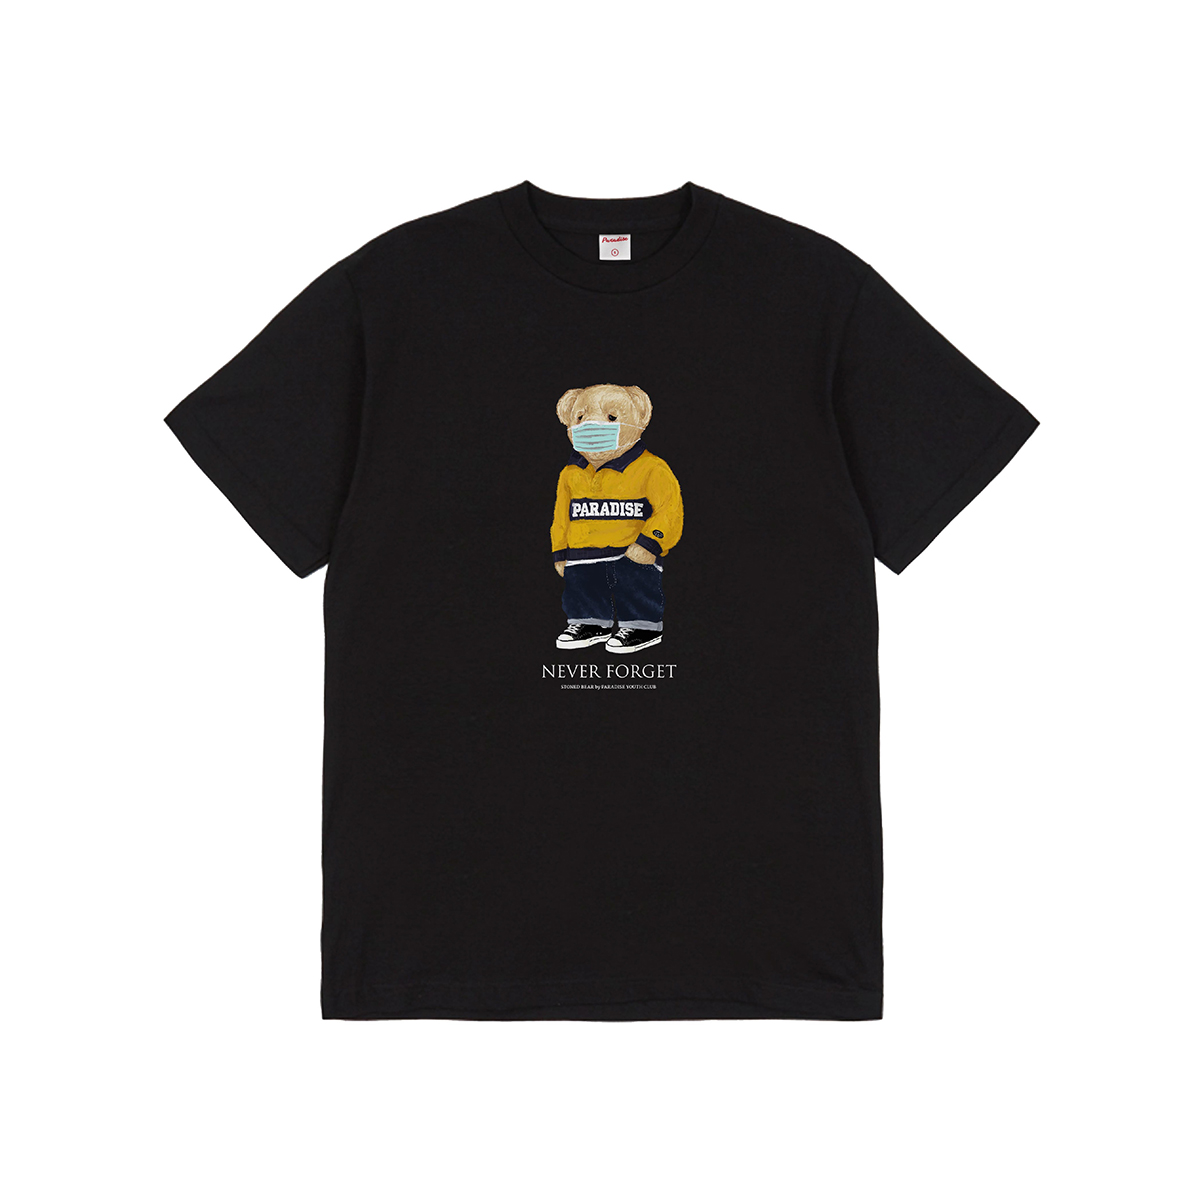 Paradise Youth Club Releases Third Stoned Bear Installment